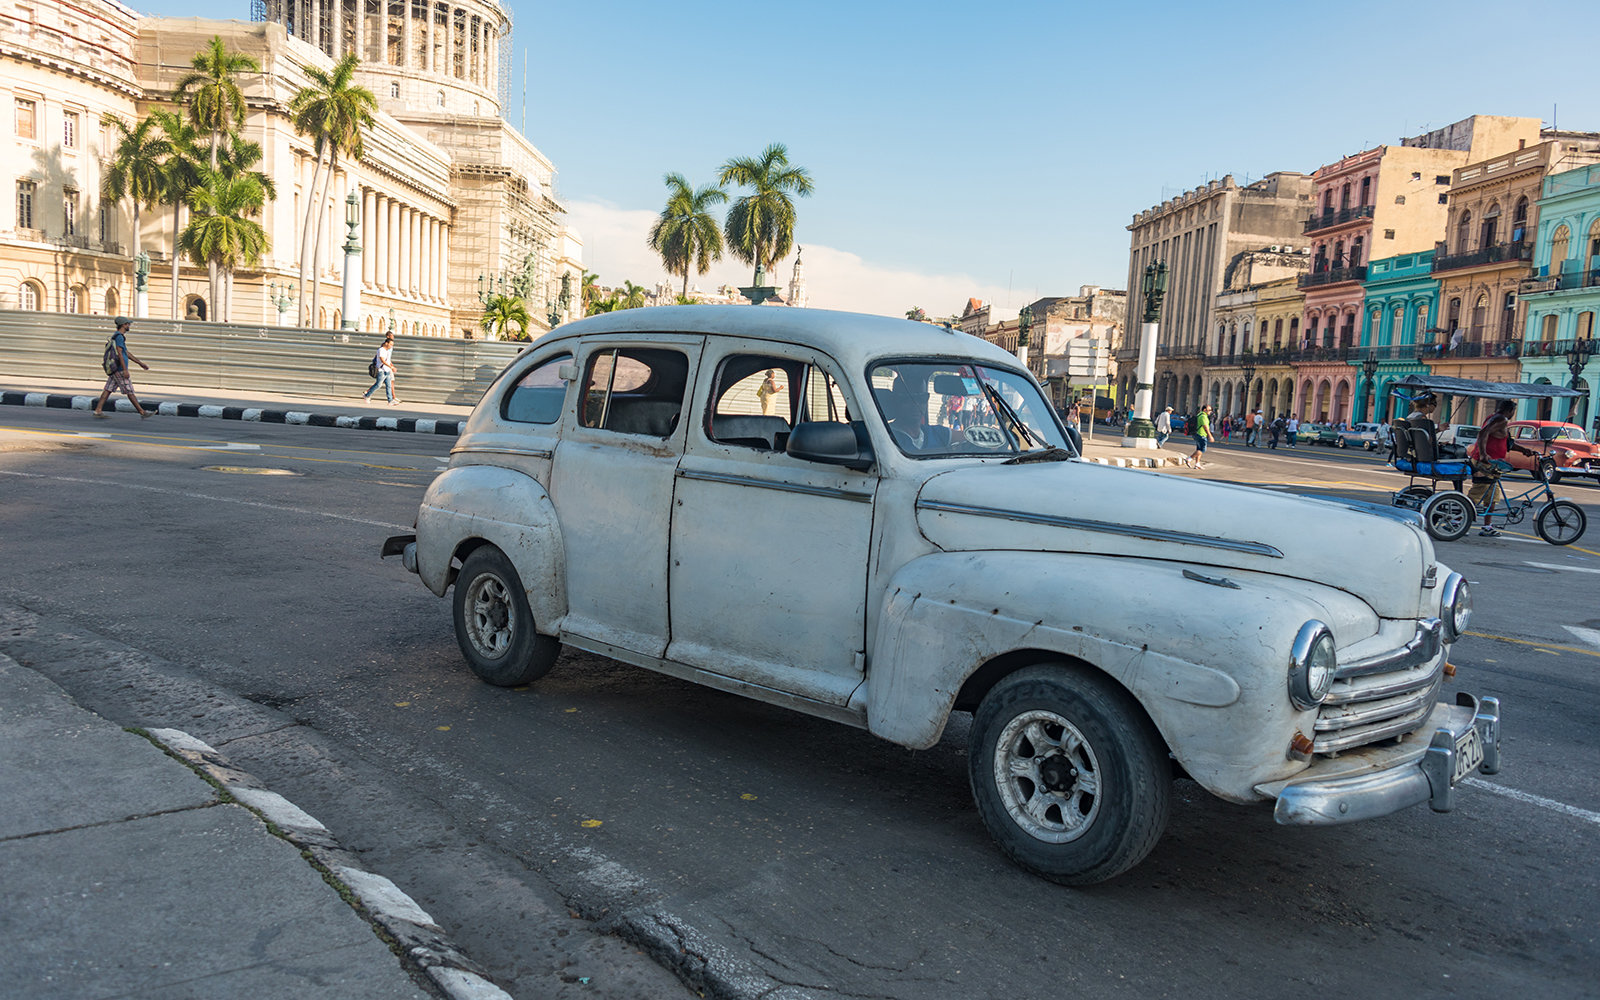 HAVANA, CUBA - 2015/09/18: Cuba news: real life use of obsolete vehicles in 2015. Cuba is known for the beautiful classic American cars still running in the Caribbean Island. However, here you find the real use of the real cars running in Cuba on a daily